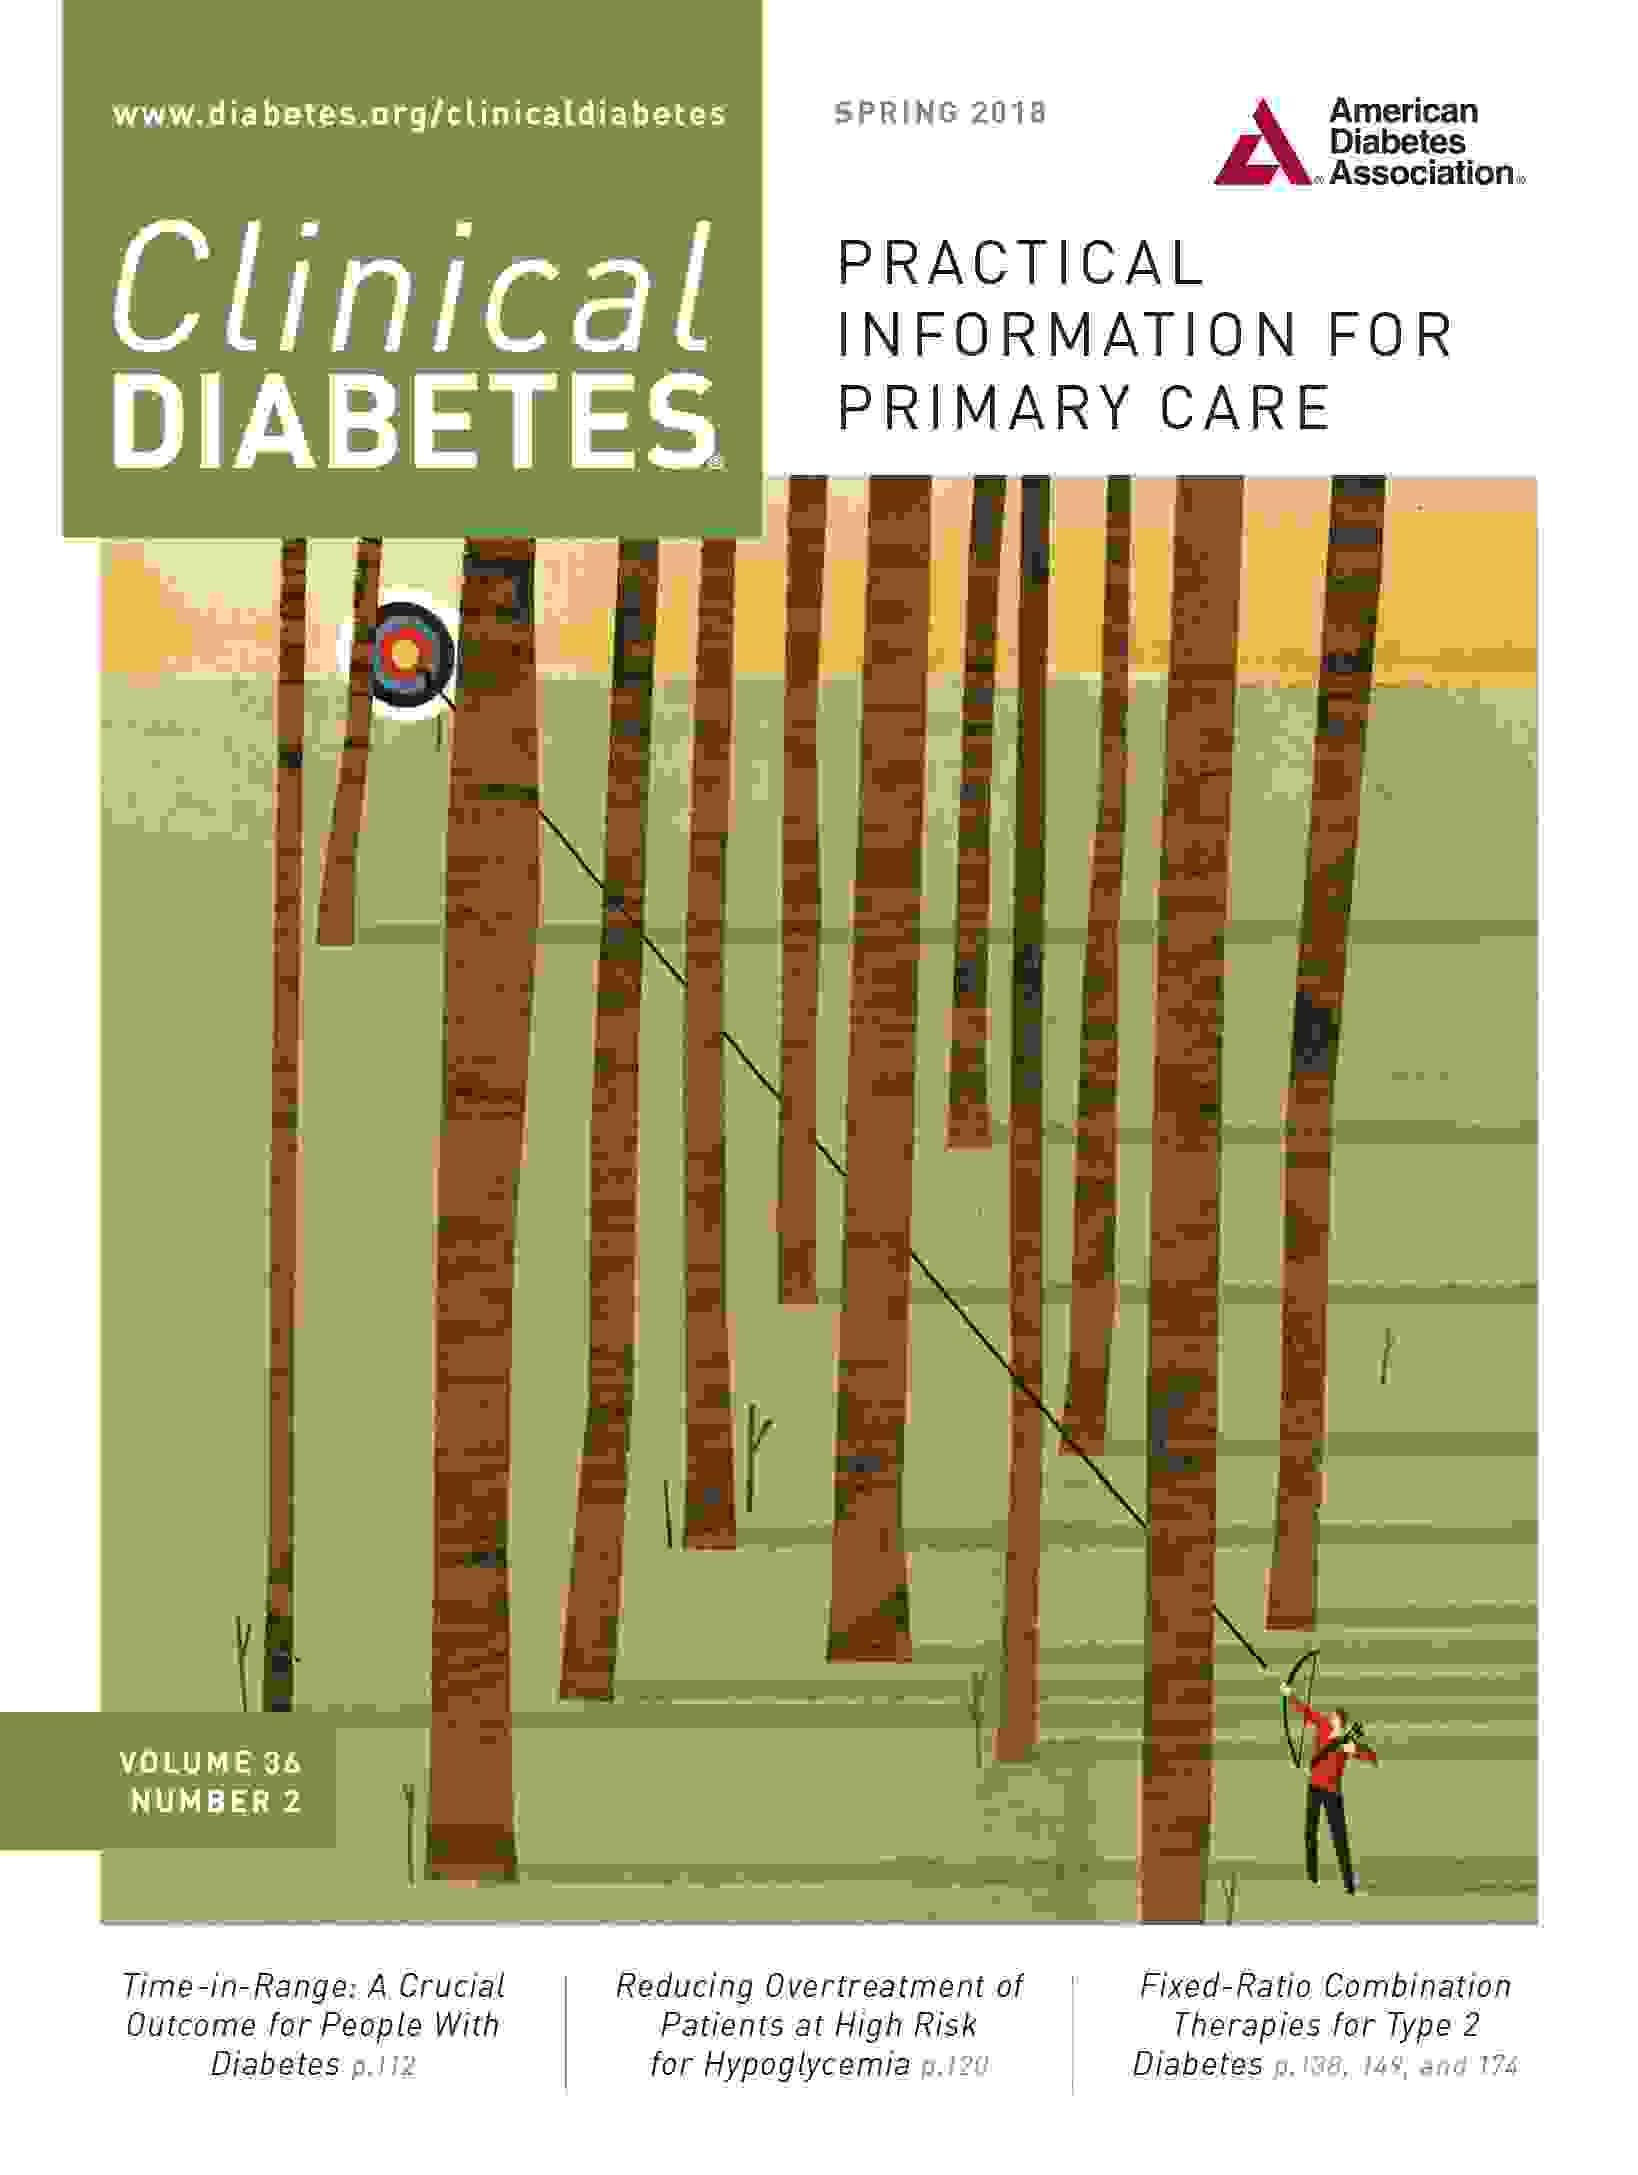 Journal of Clinical Diabetes